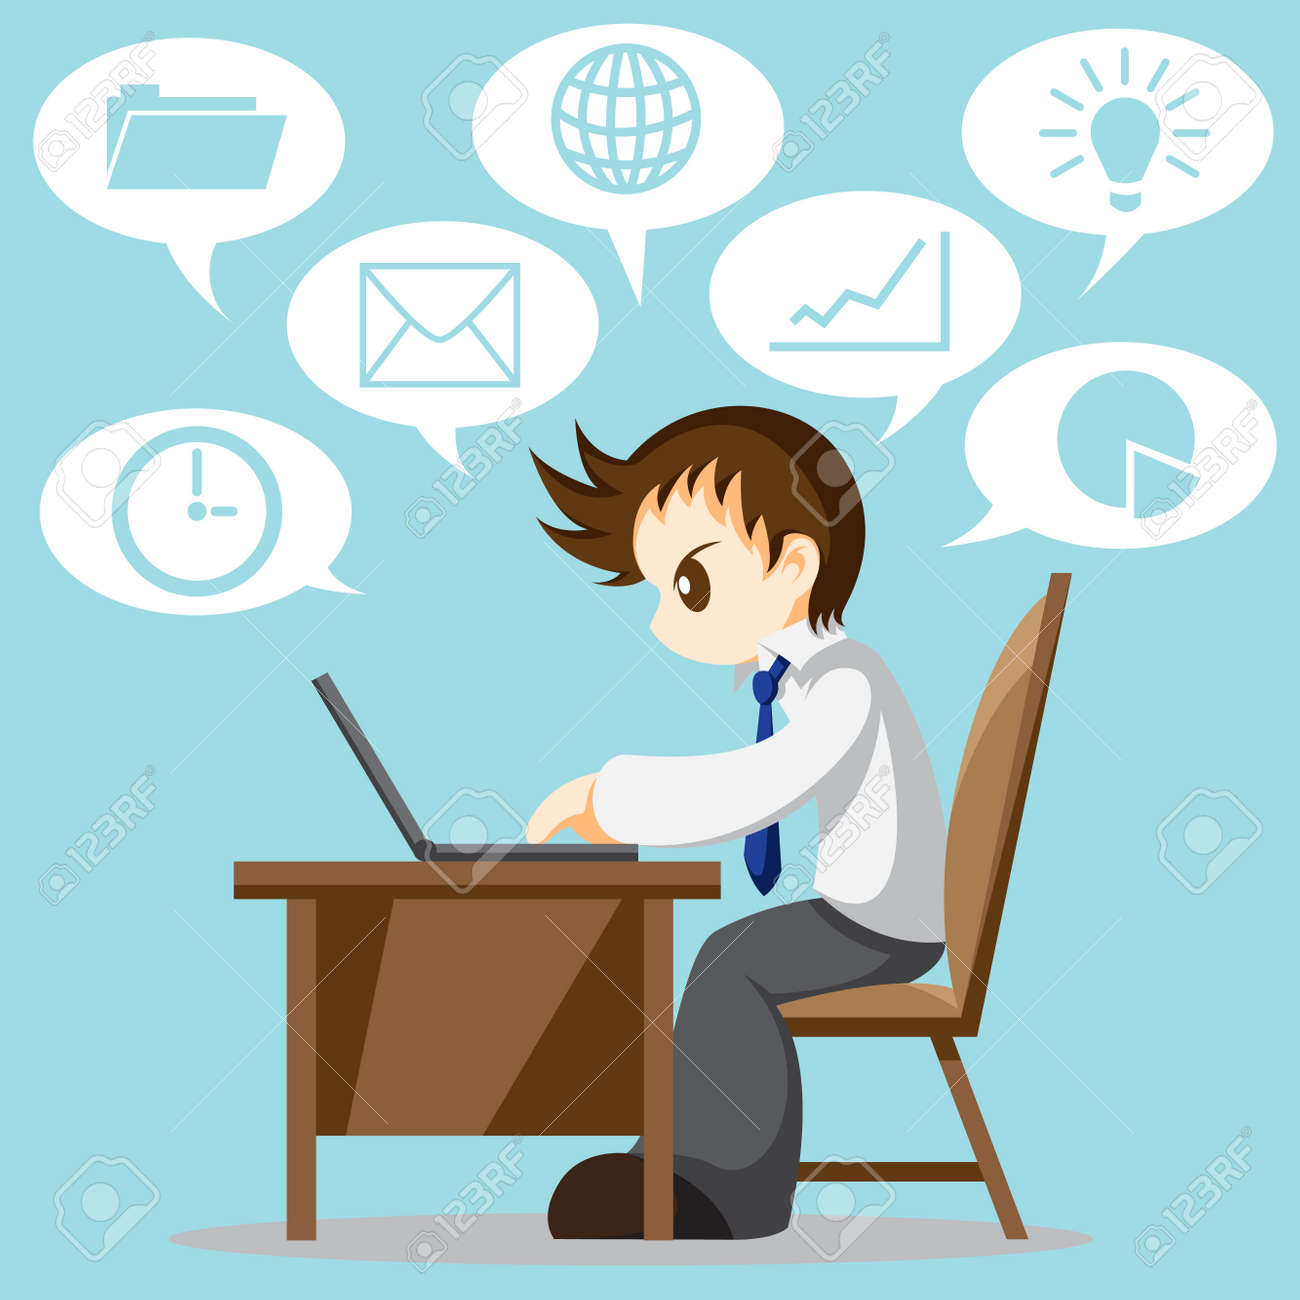 Diário do New Man11 - Página 8 37504000-Cartoon-vector-of-hard-working-office-worker-with-icon-Stock-Photo